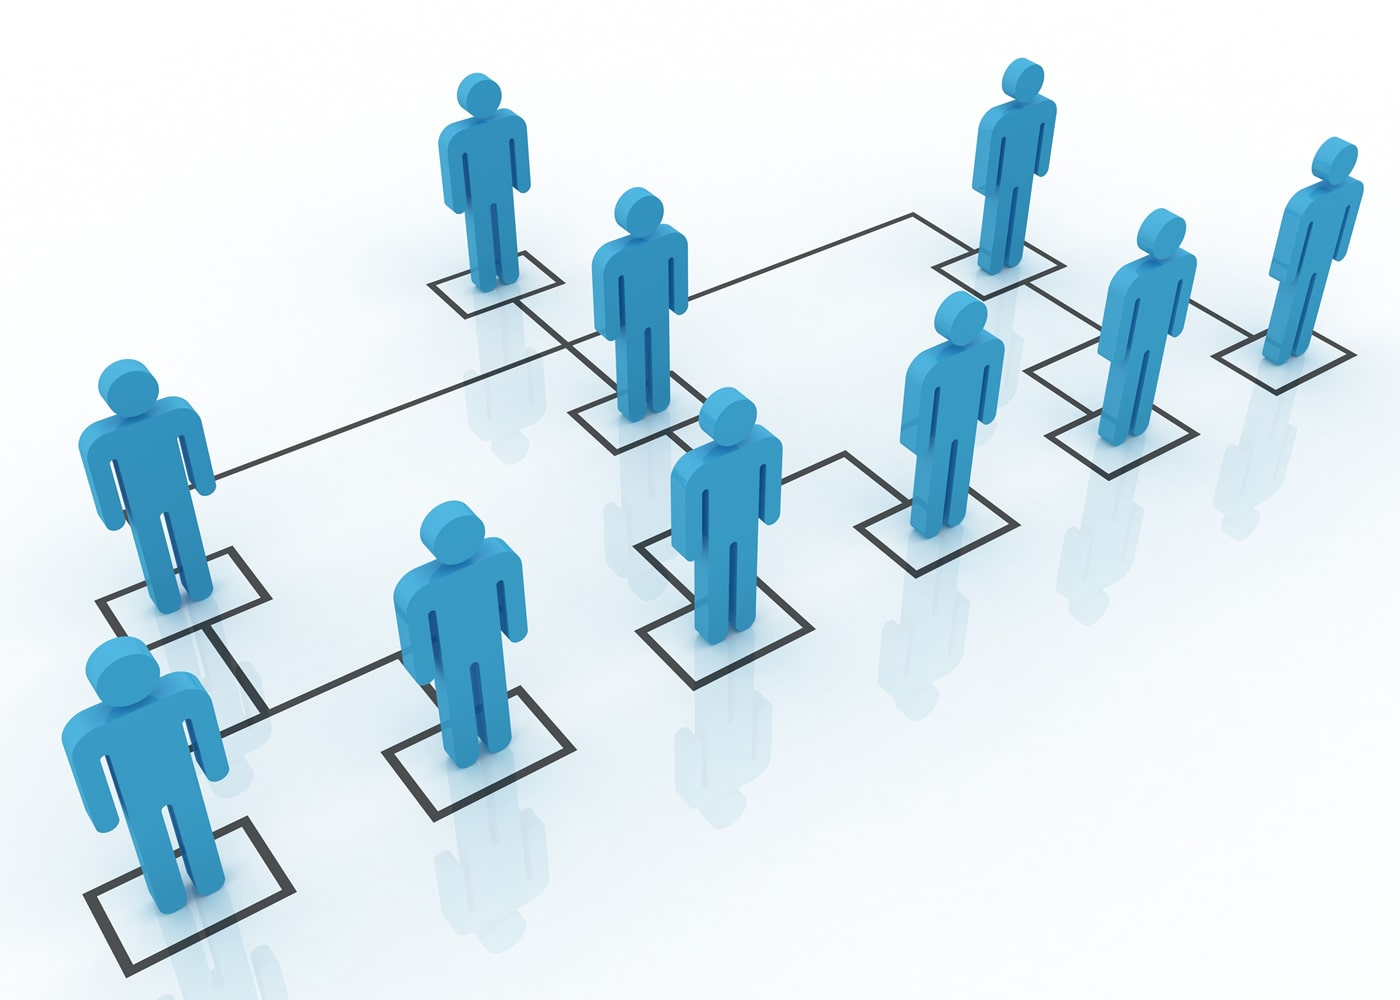 naem-research-reports-2012-ehs-sustainability-staffing-and-structure-1560x2010